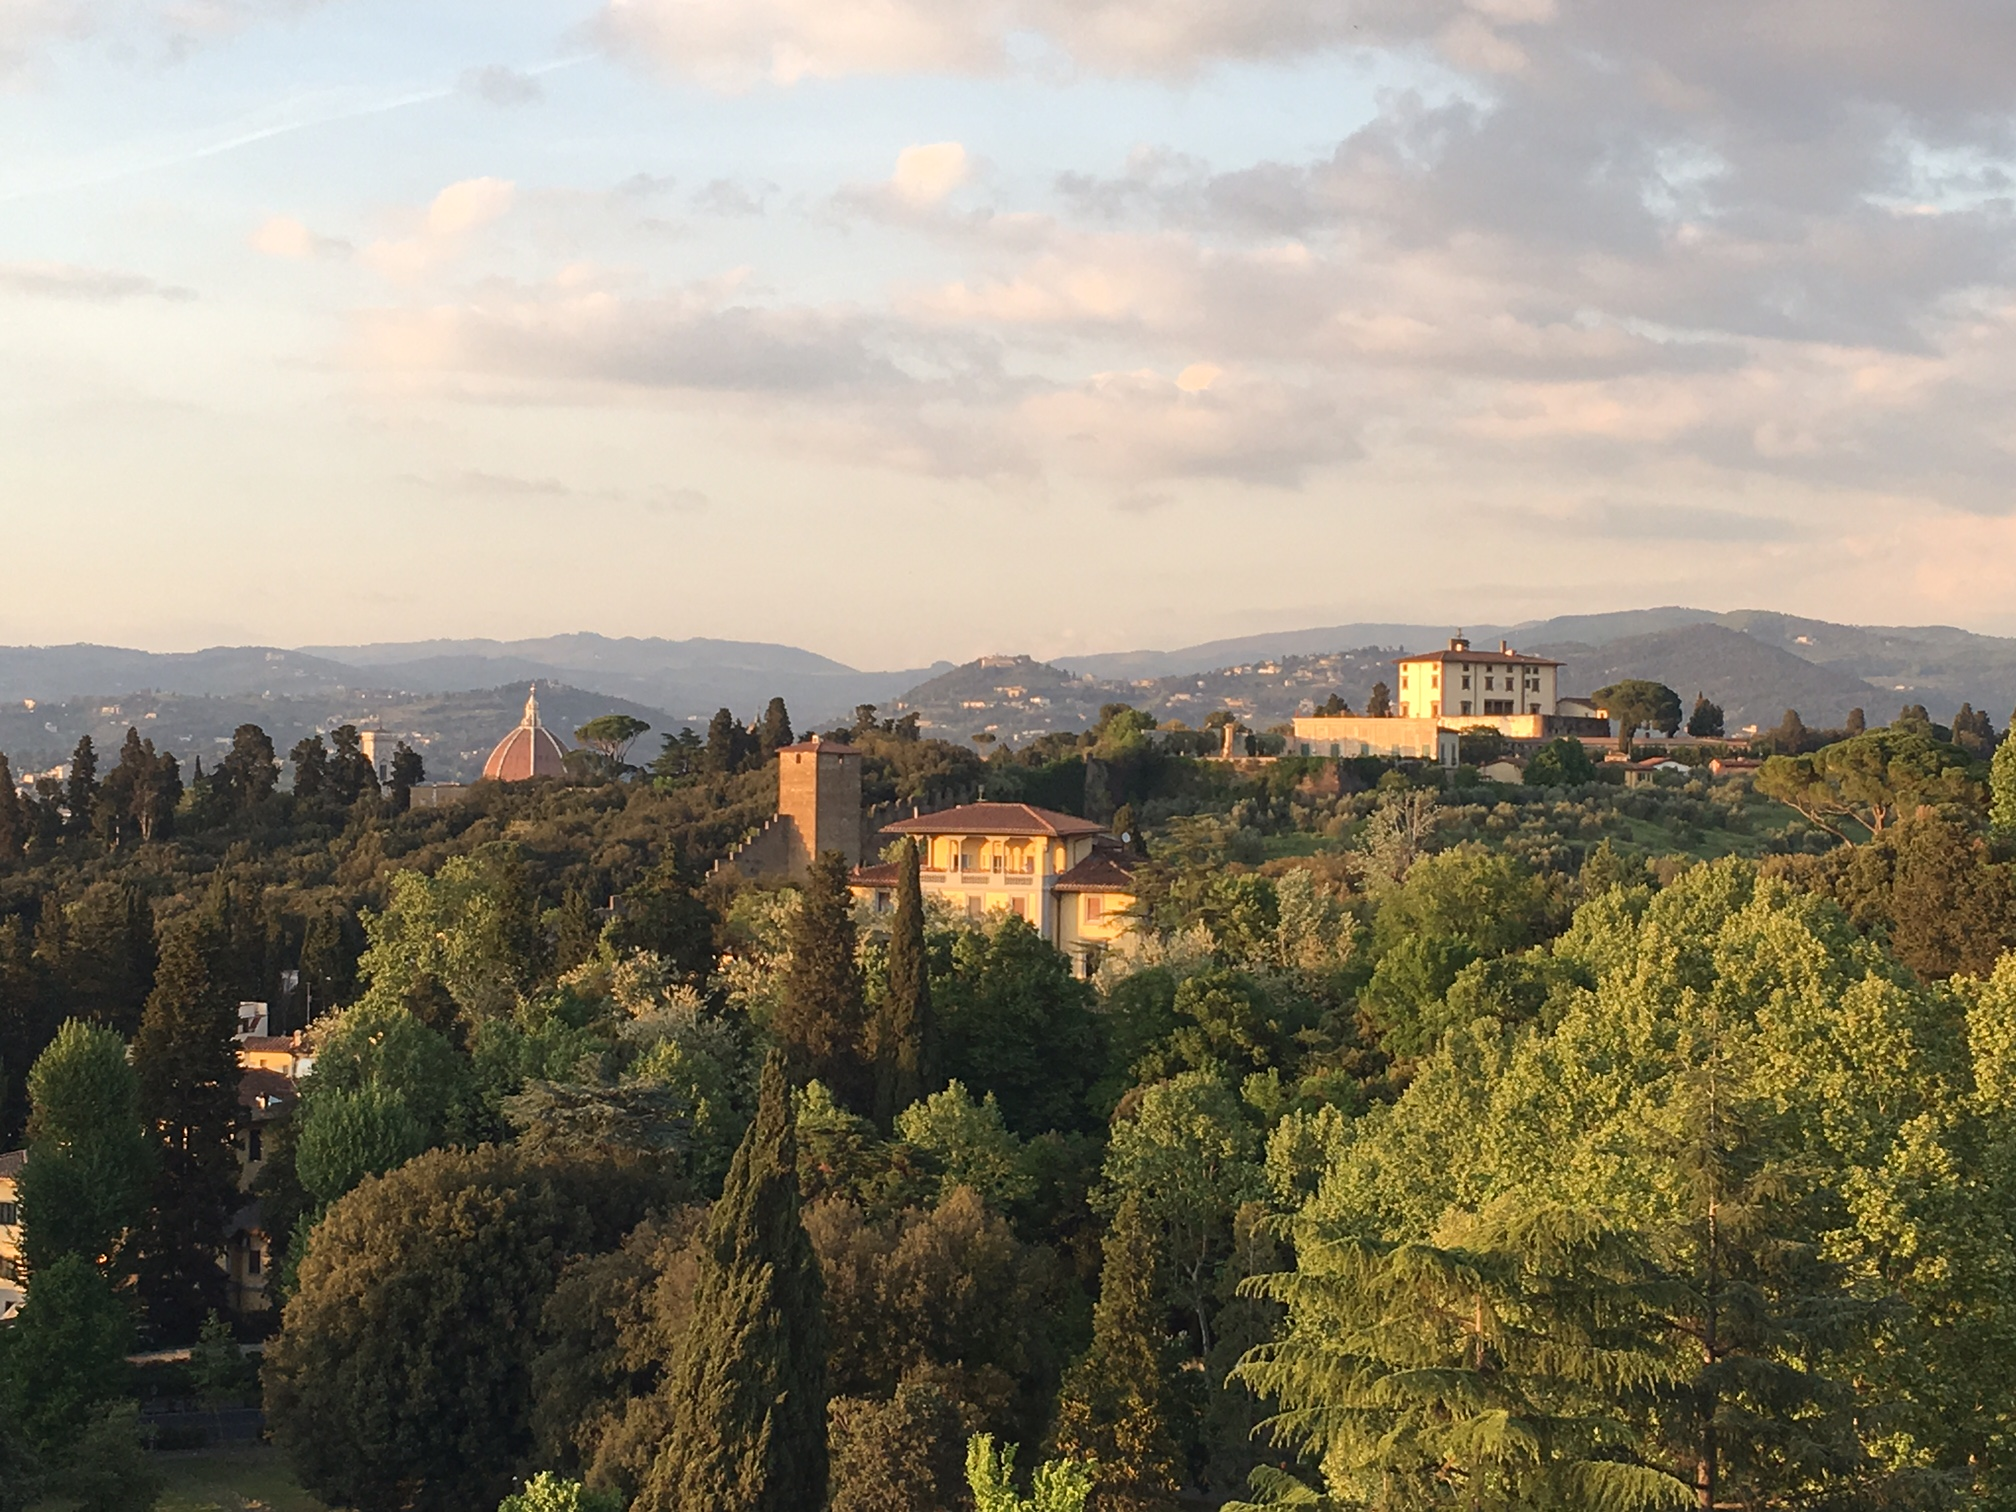 View from Villa Cora's rooftop - Florence